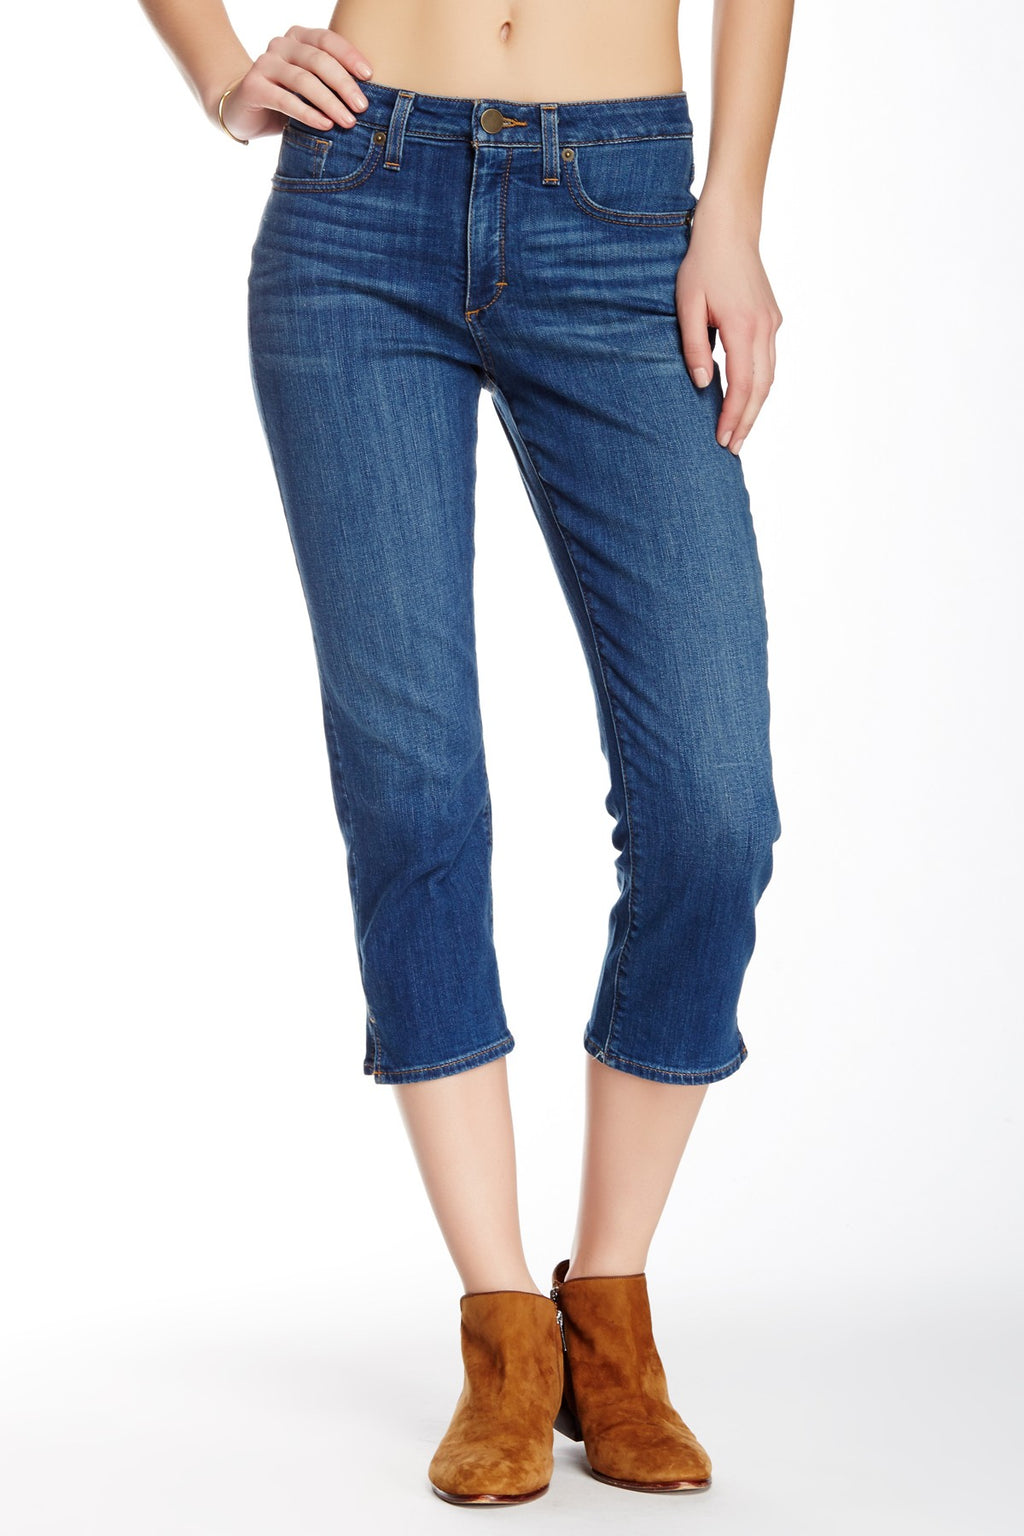 SPANX The Slim-X Casual Capri Jean